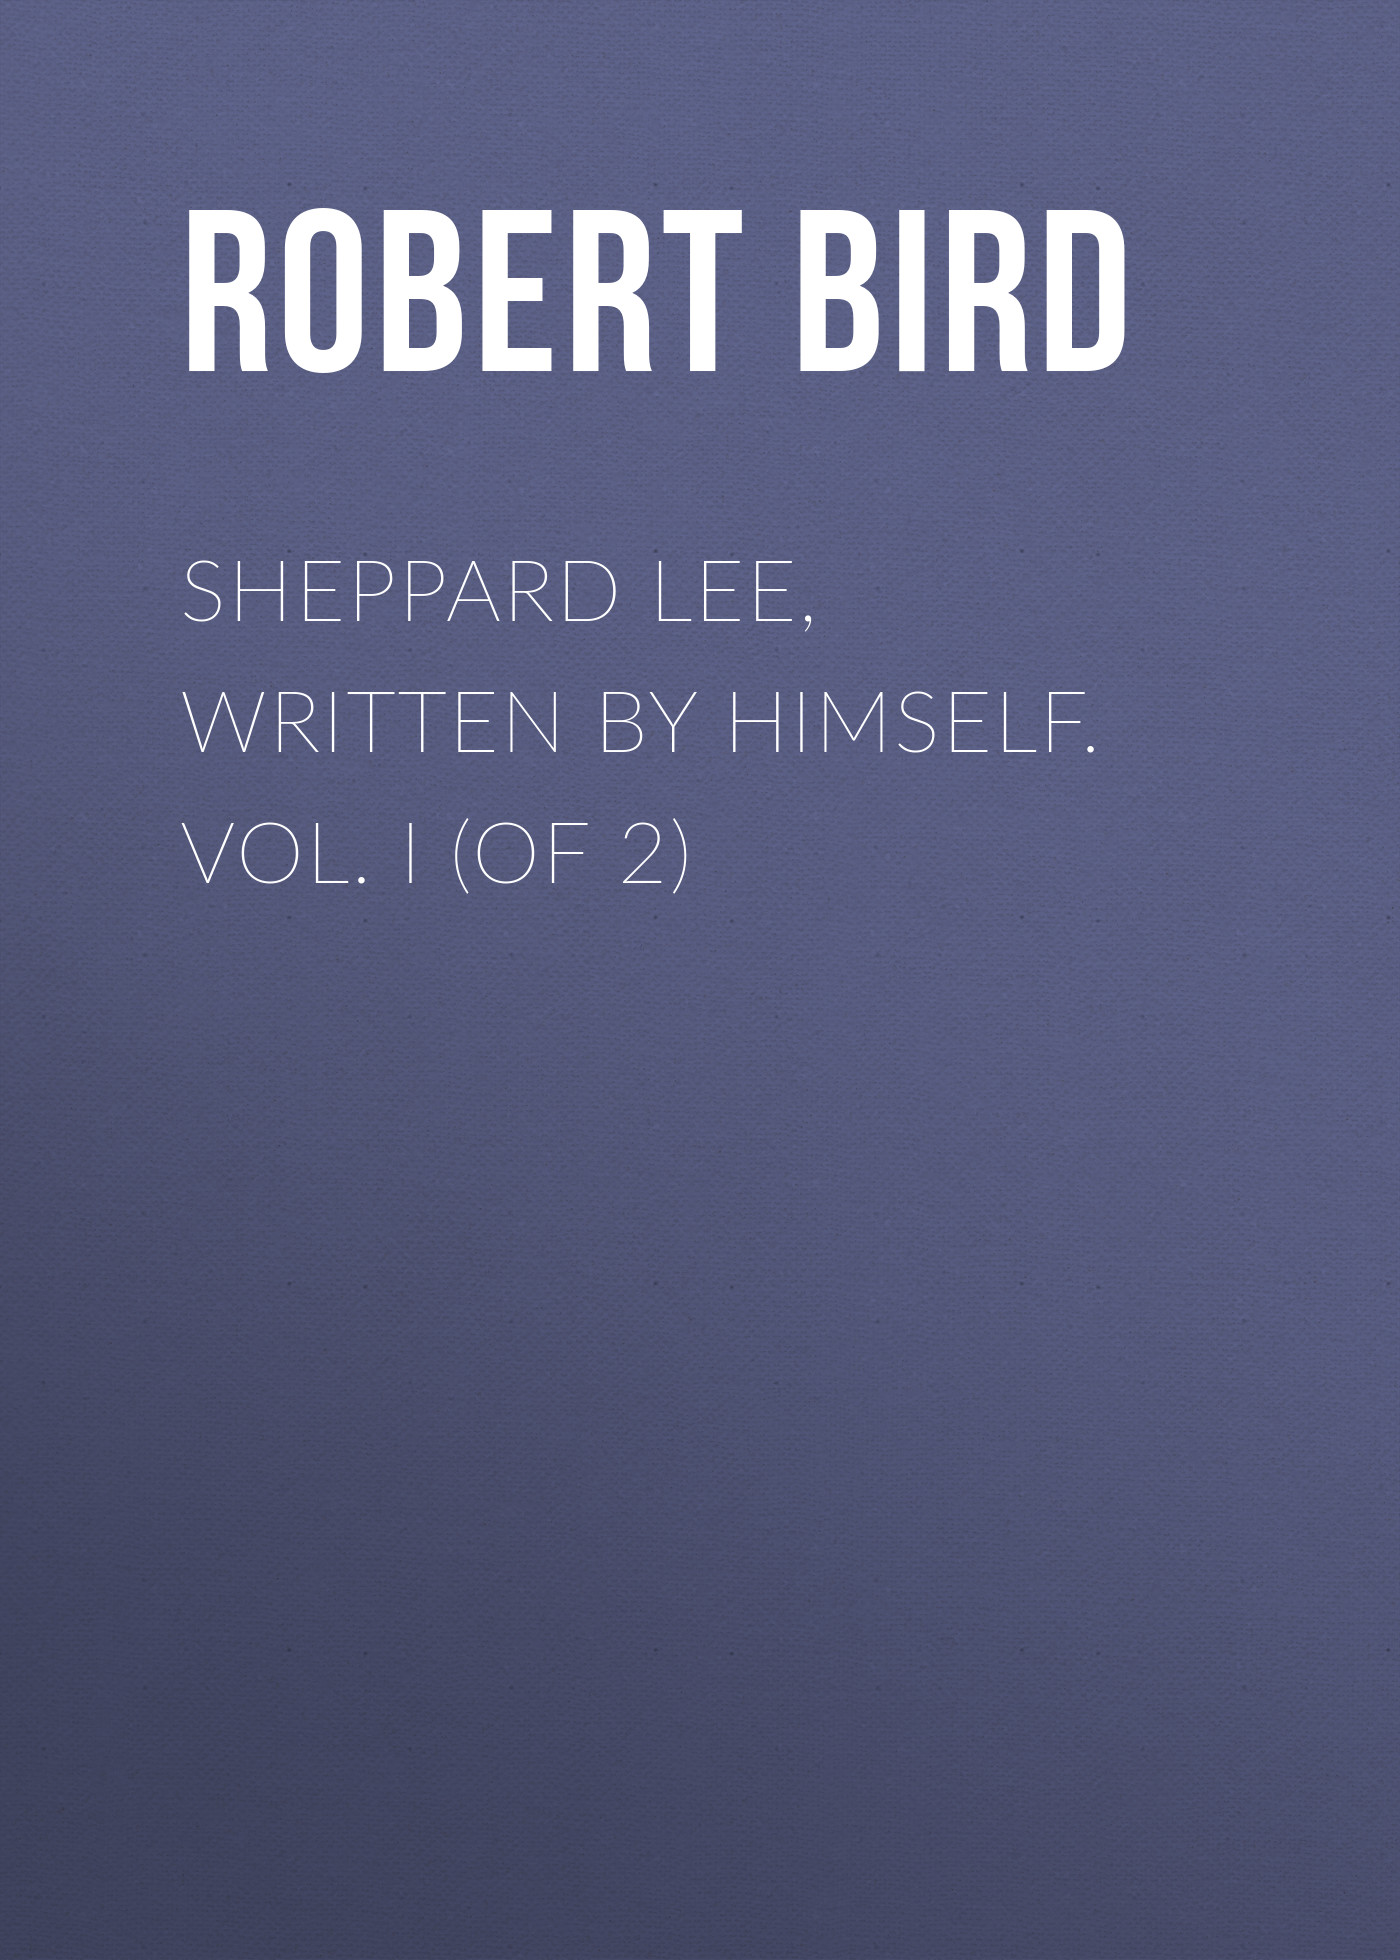 Bird Robert Montgomery Sheppard Lee, Written by Himself. Vol. I (of 2) цена в Москве и Питере